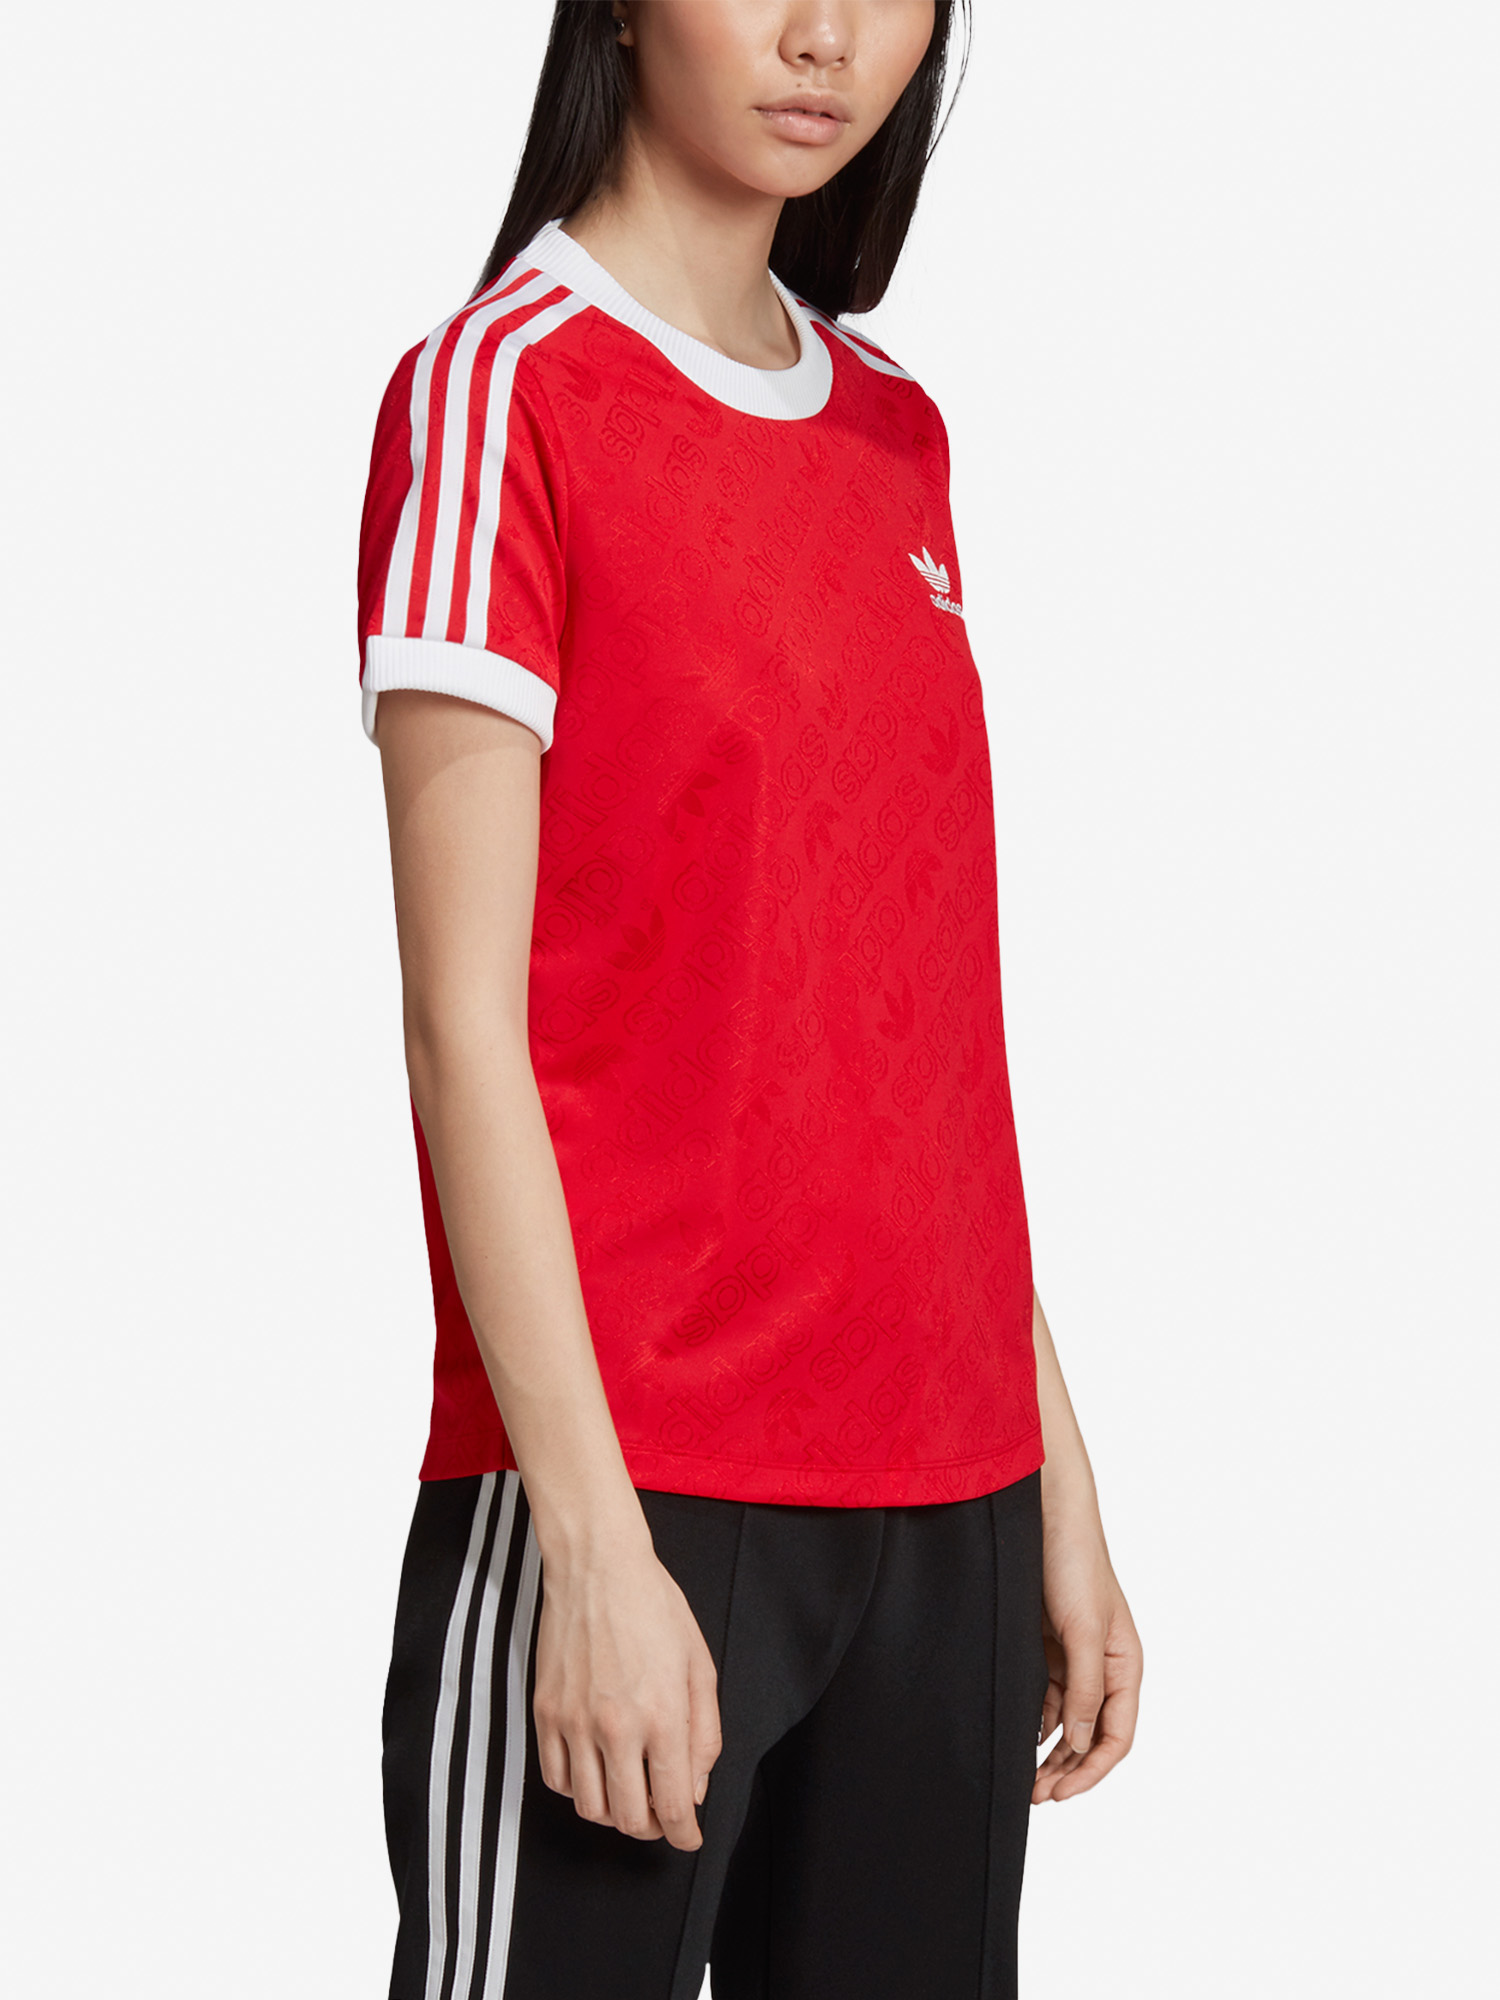 Tričko adidas Originals 3 Str Tee (6)